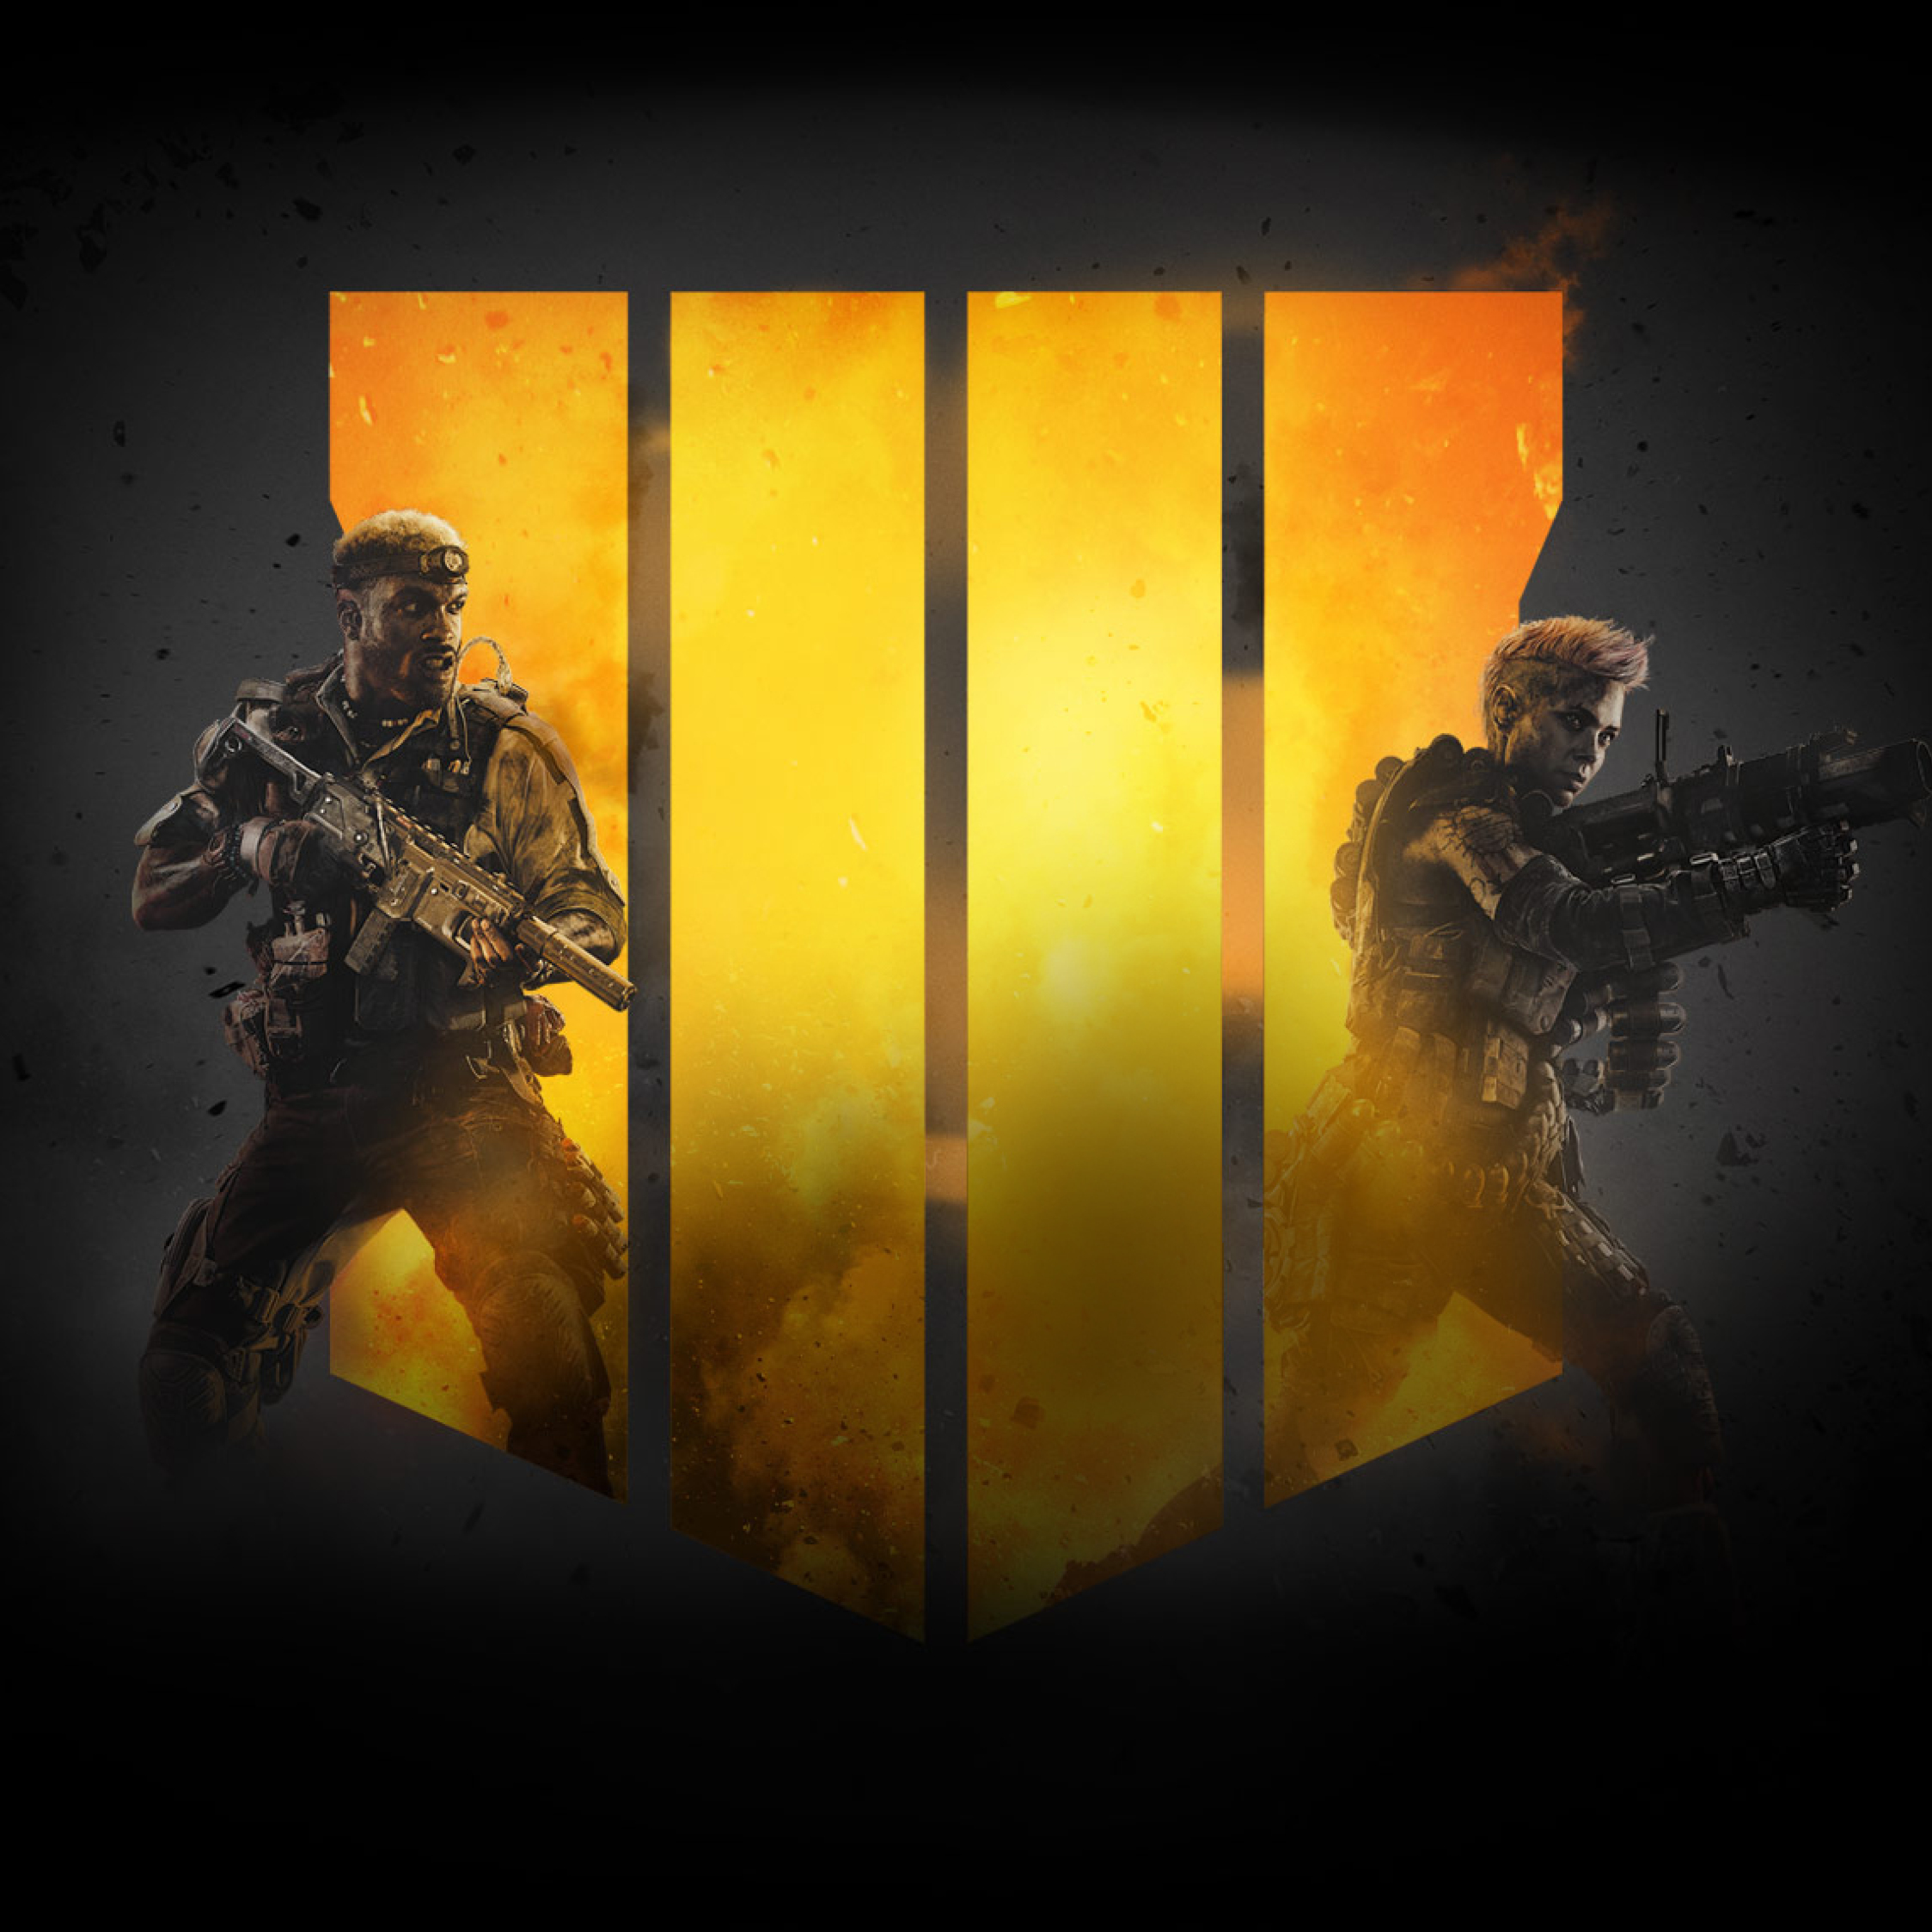 2248x2248 Call Of Duty Black Ops 4 Game Poster 2248x2248